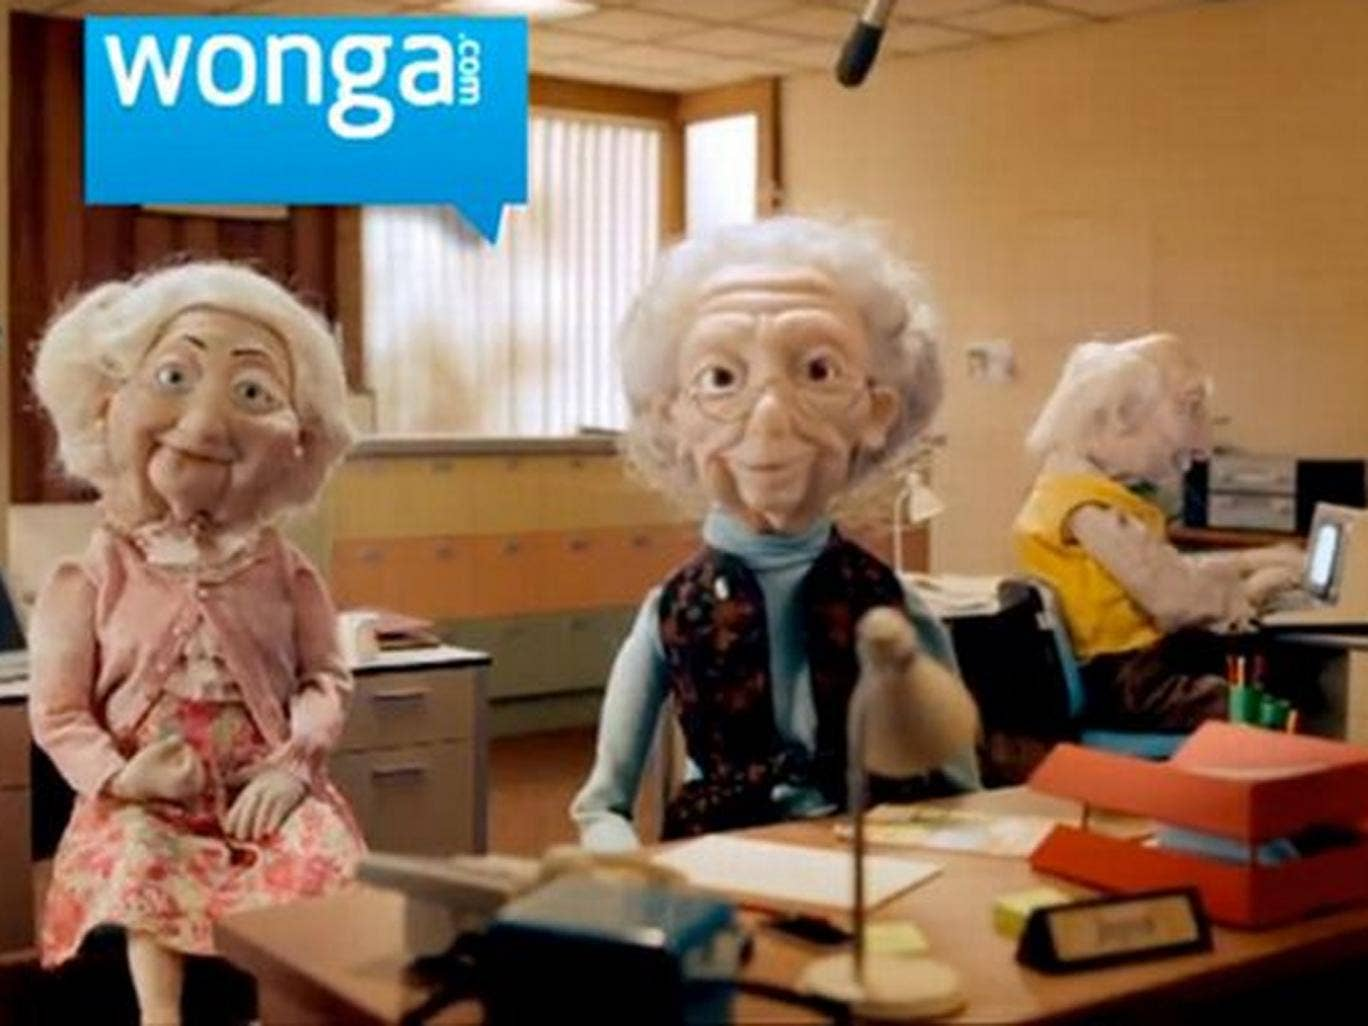 Wonga is Britain's most-profitable payday lender